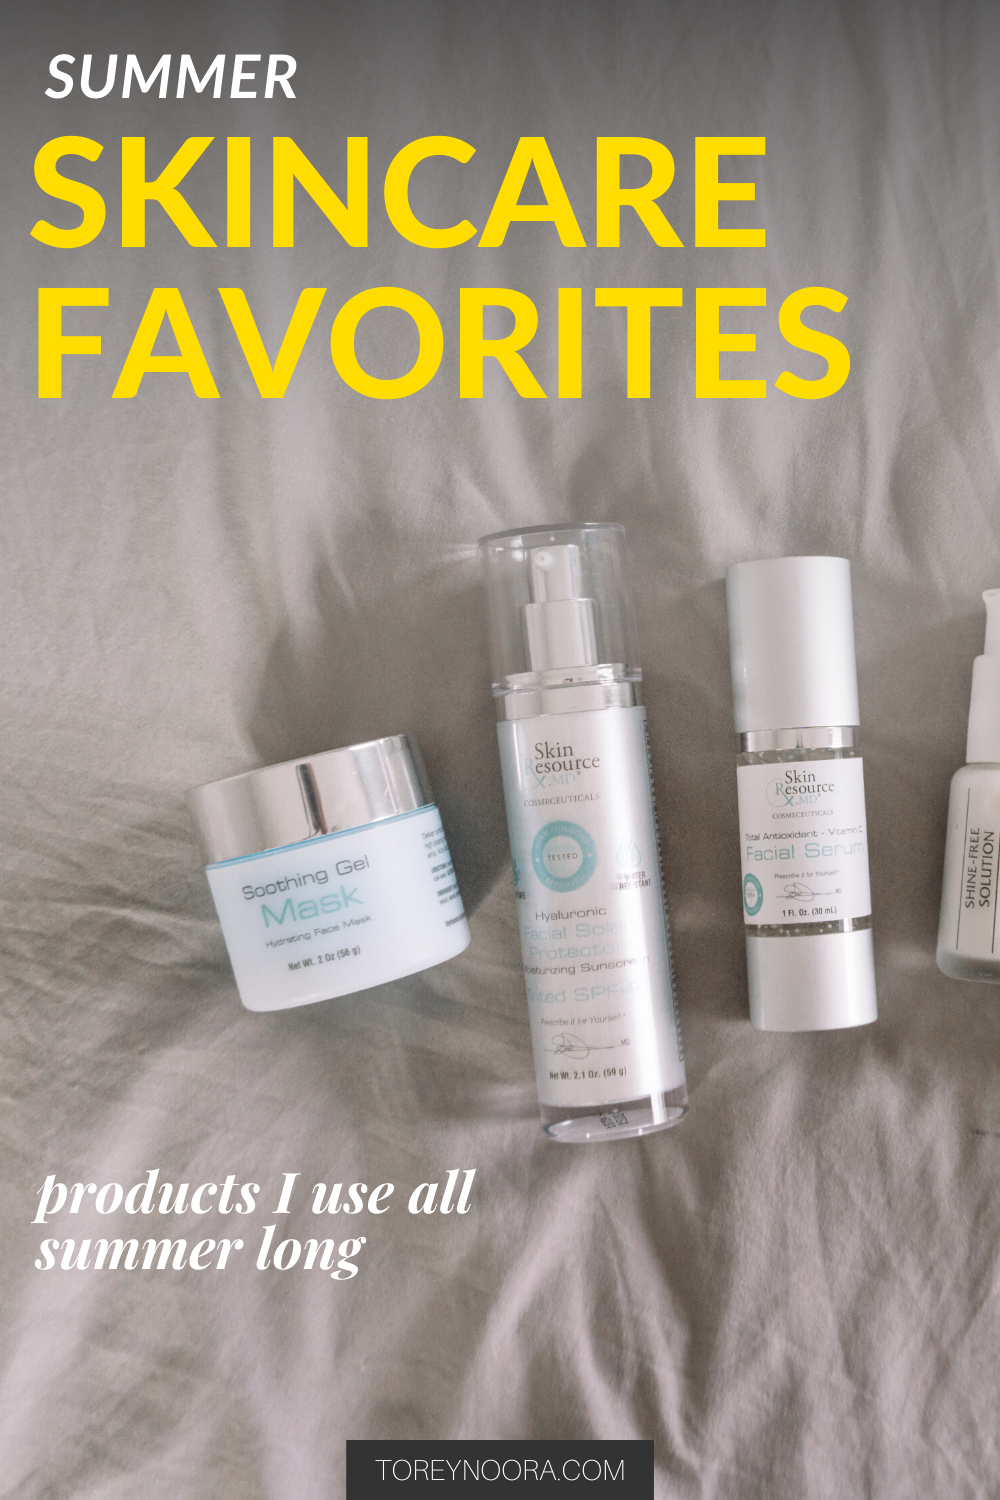 My Summer Skincare Routine Summer Skincare Essentials The Best Sunscreen For Face In 2020 Good Sunscreen For Face Skincare For Oily Skin Skin Care Essentials